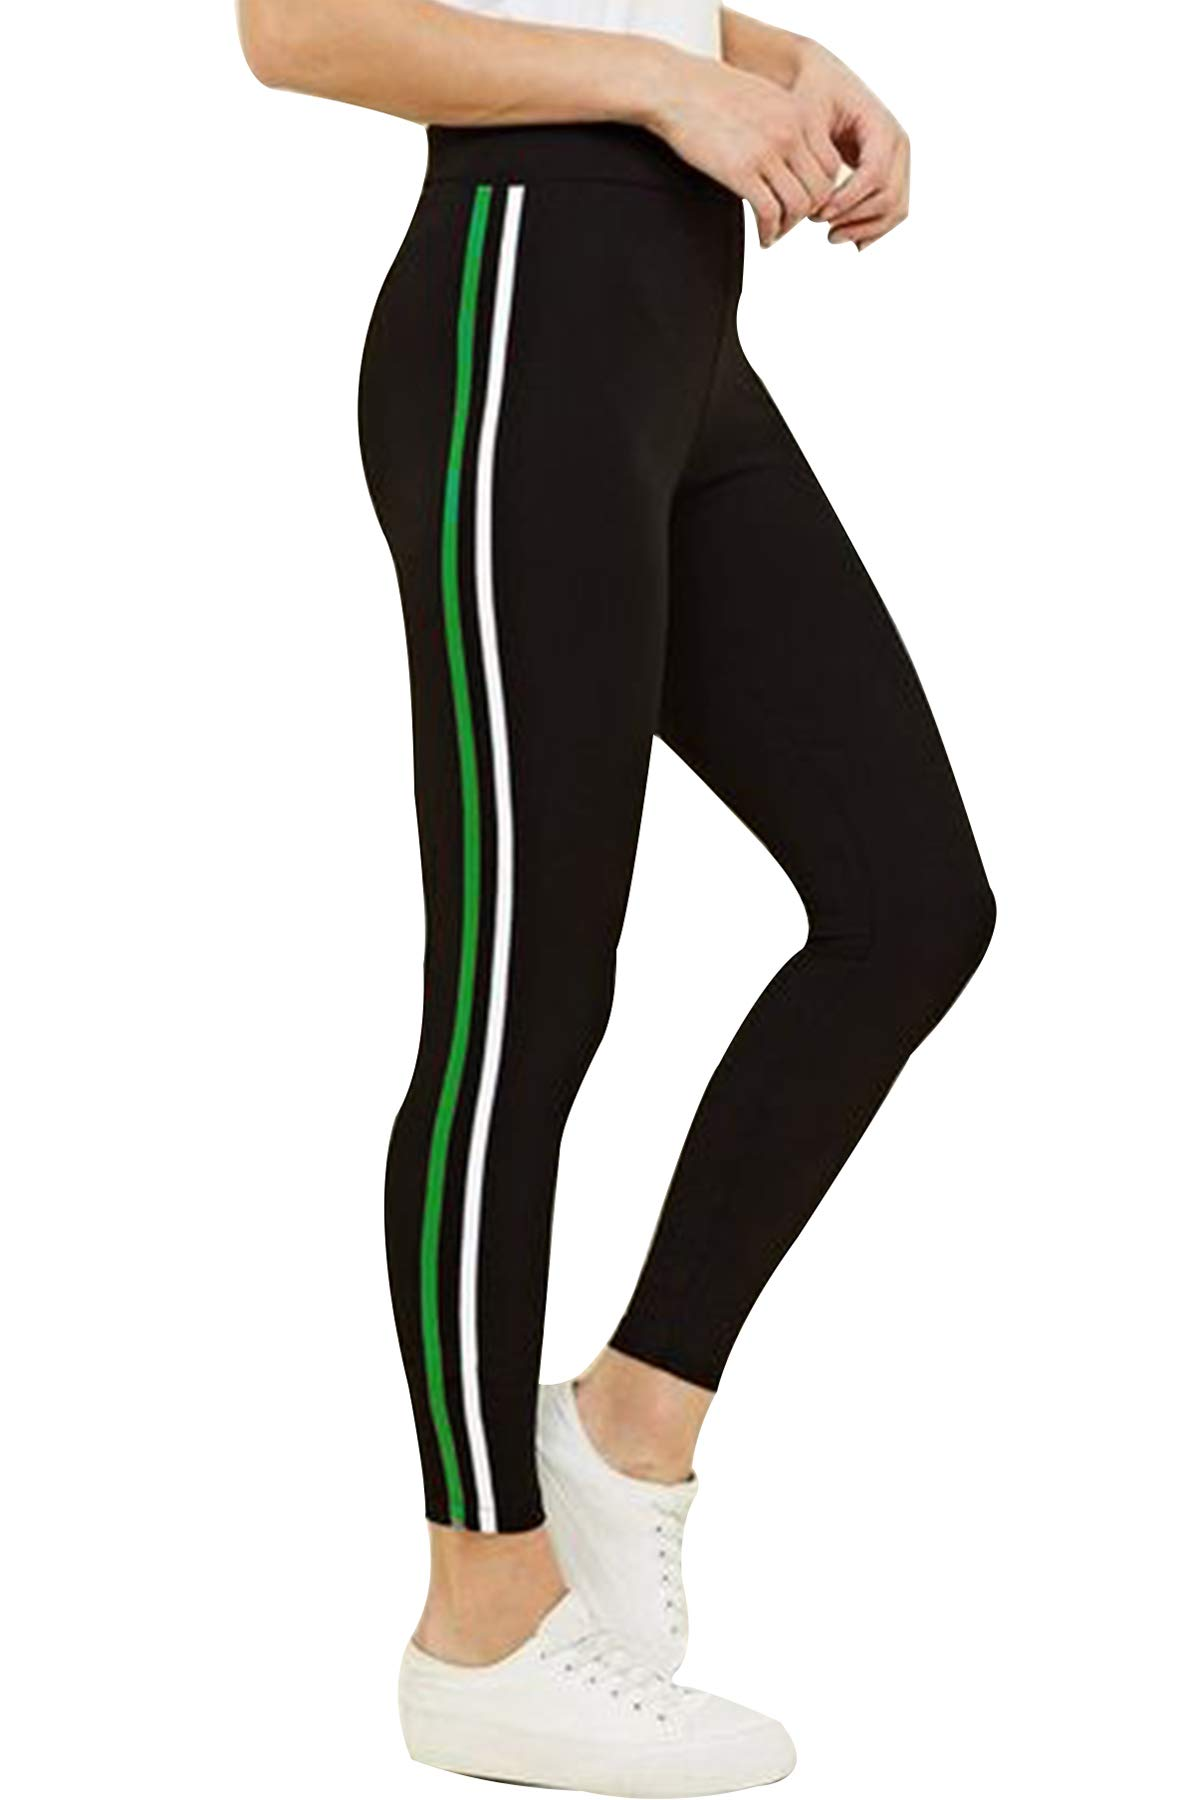 Amazon price history for BLINKIN Yoga Gym Workout and Active Sports Fitness Black Stripe Polyester Leggings Tights for Women|Girls(5550) (size-28)